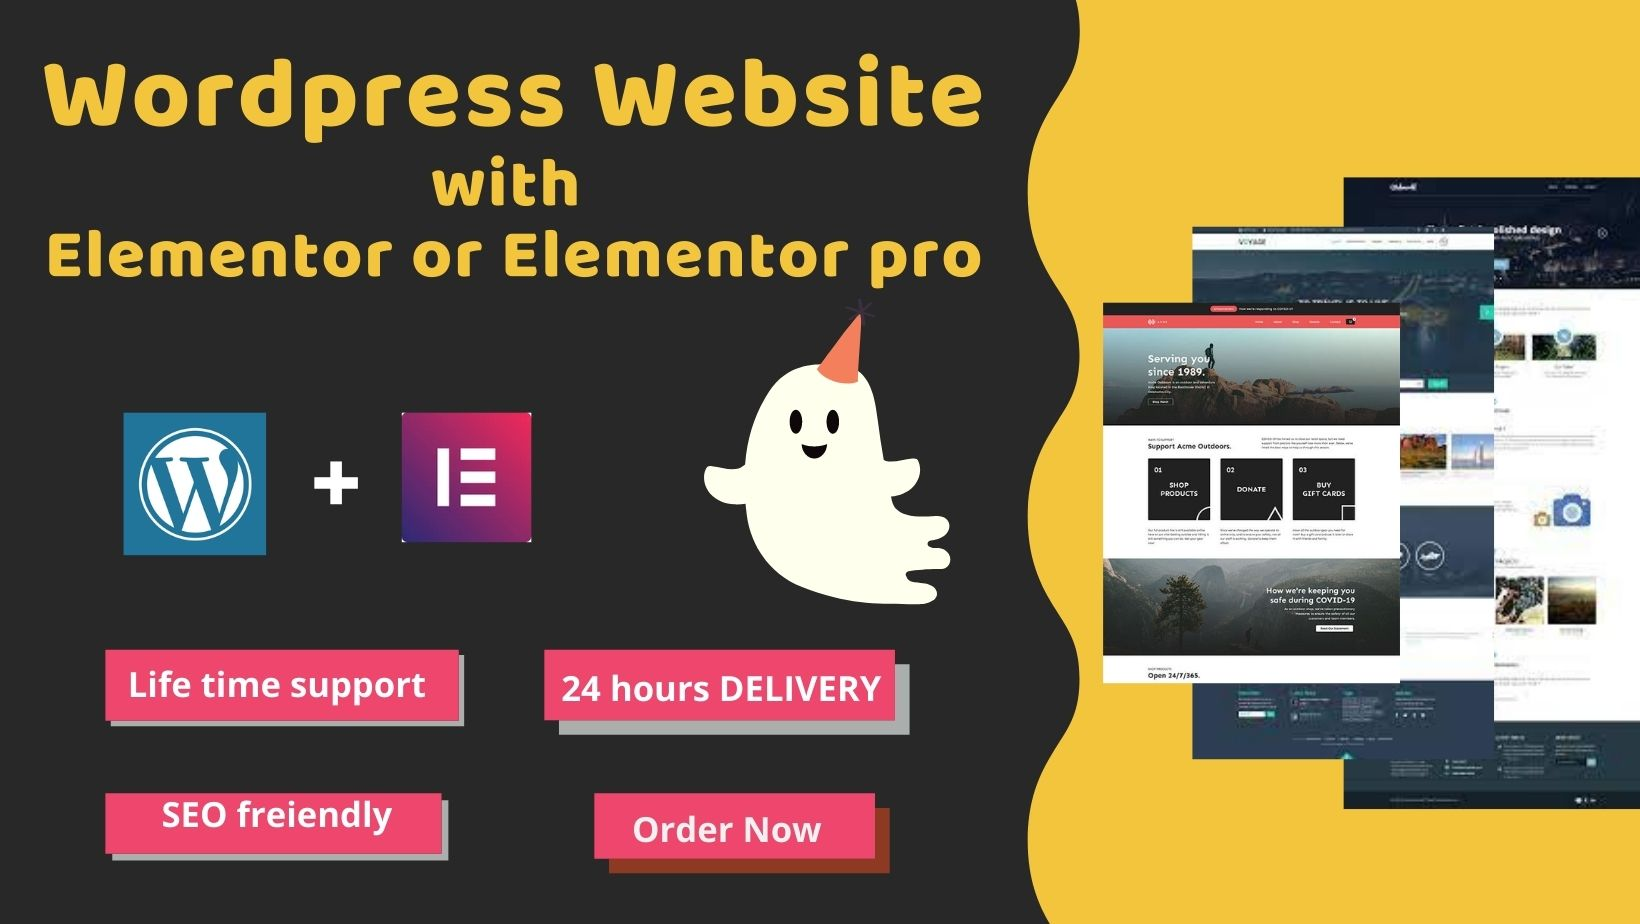 I will Design, redesign, duplicate any wordpress website with Elementor pro